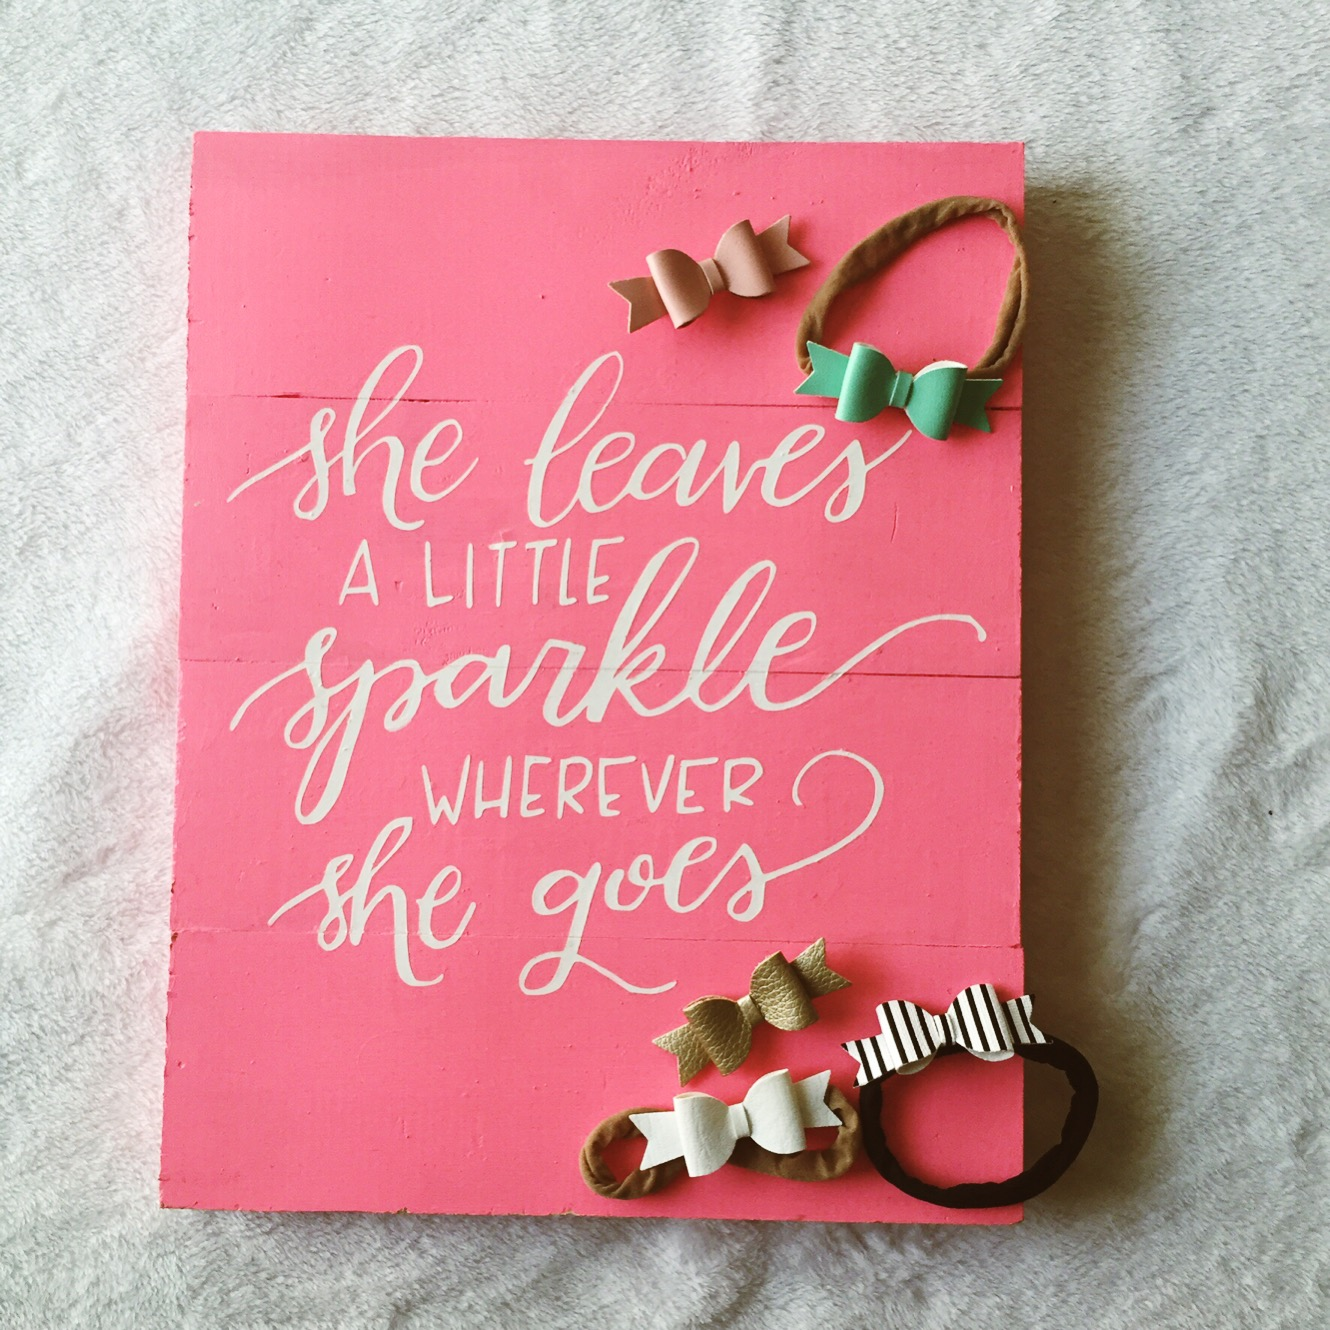 she leaves a little sparkle wherever she goes print